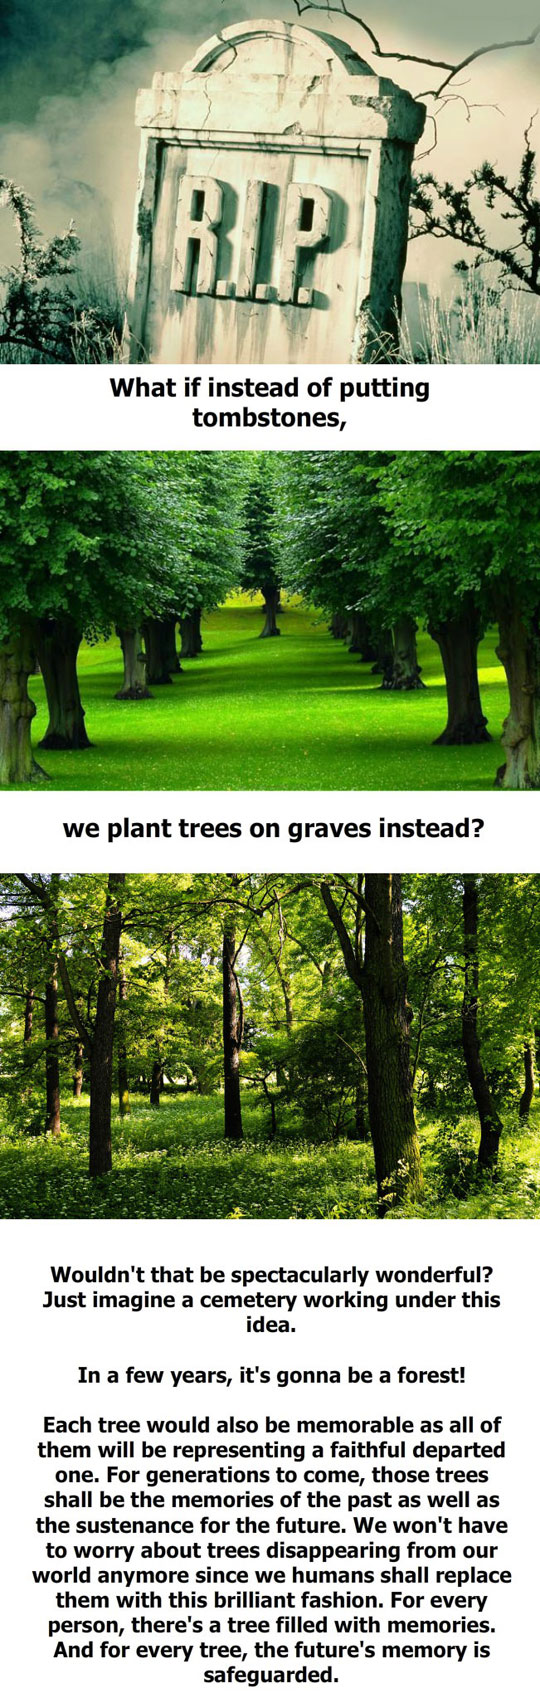 cemetery-idea-planting-trees